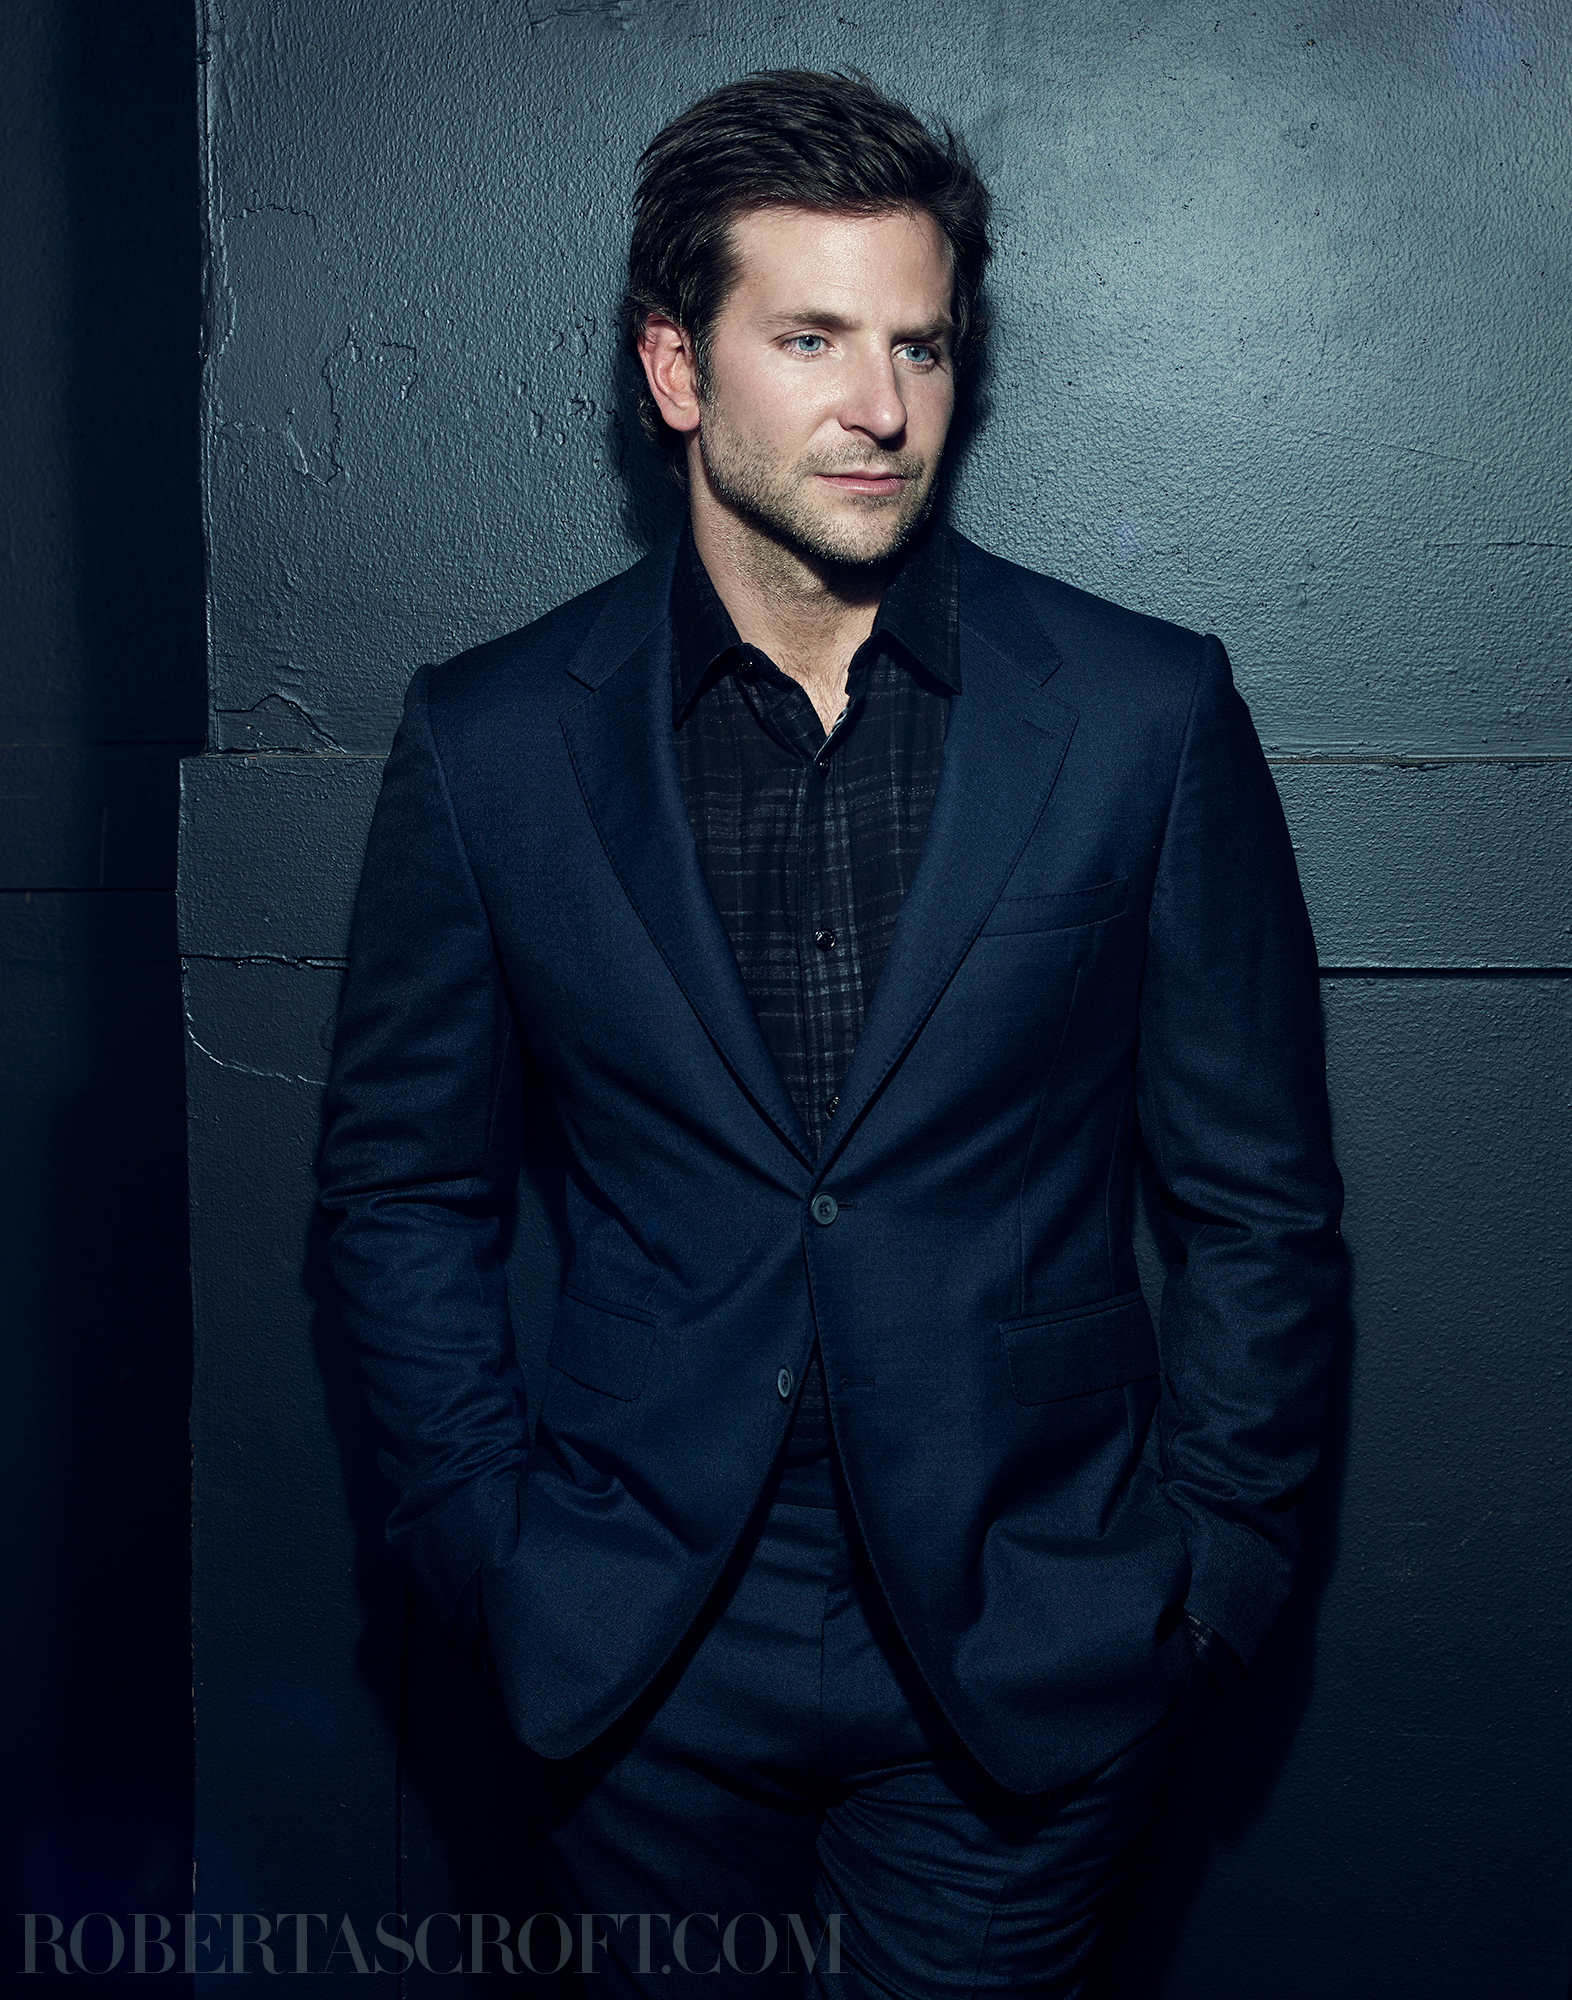 Bradley-Cooper-by-Robert-Ascroft-02